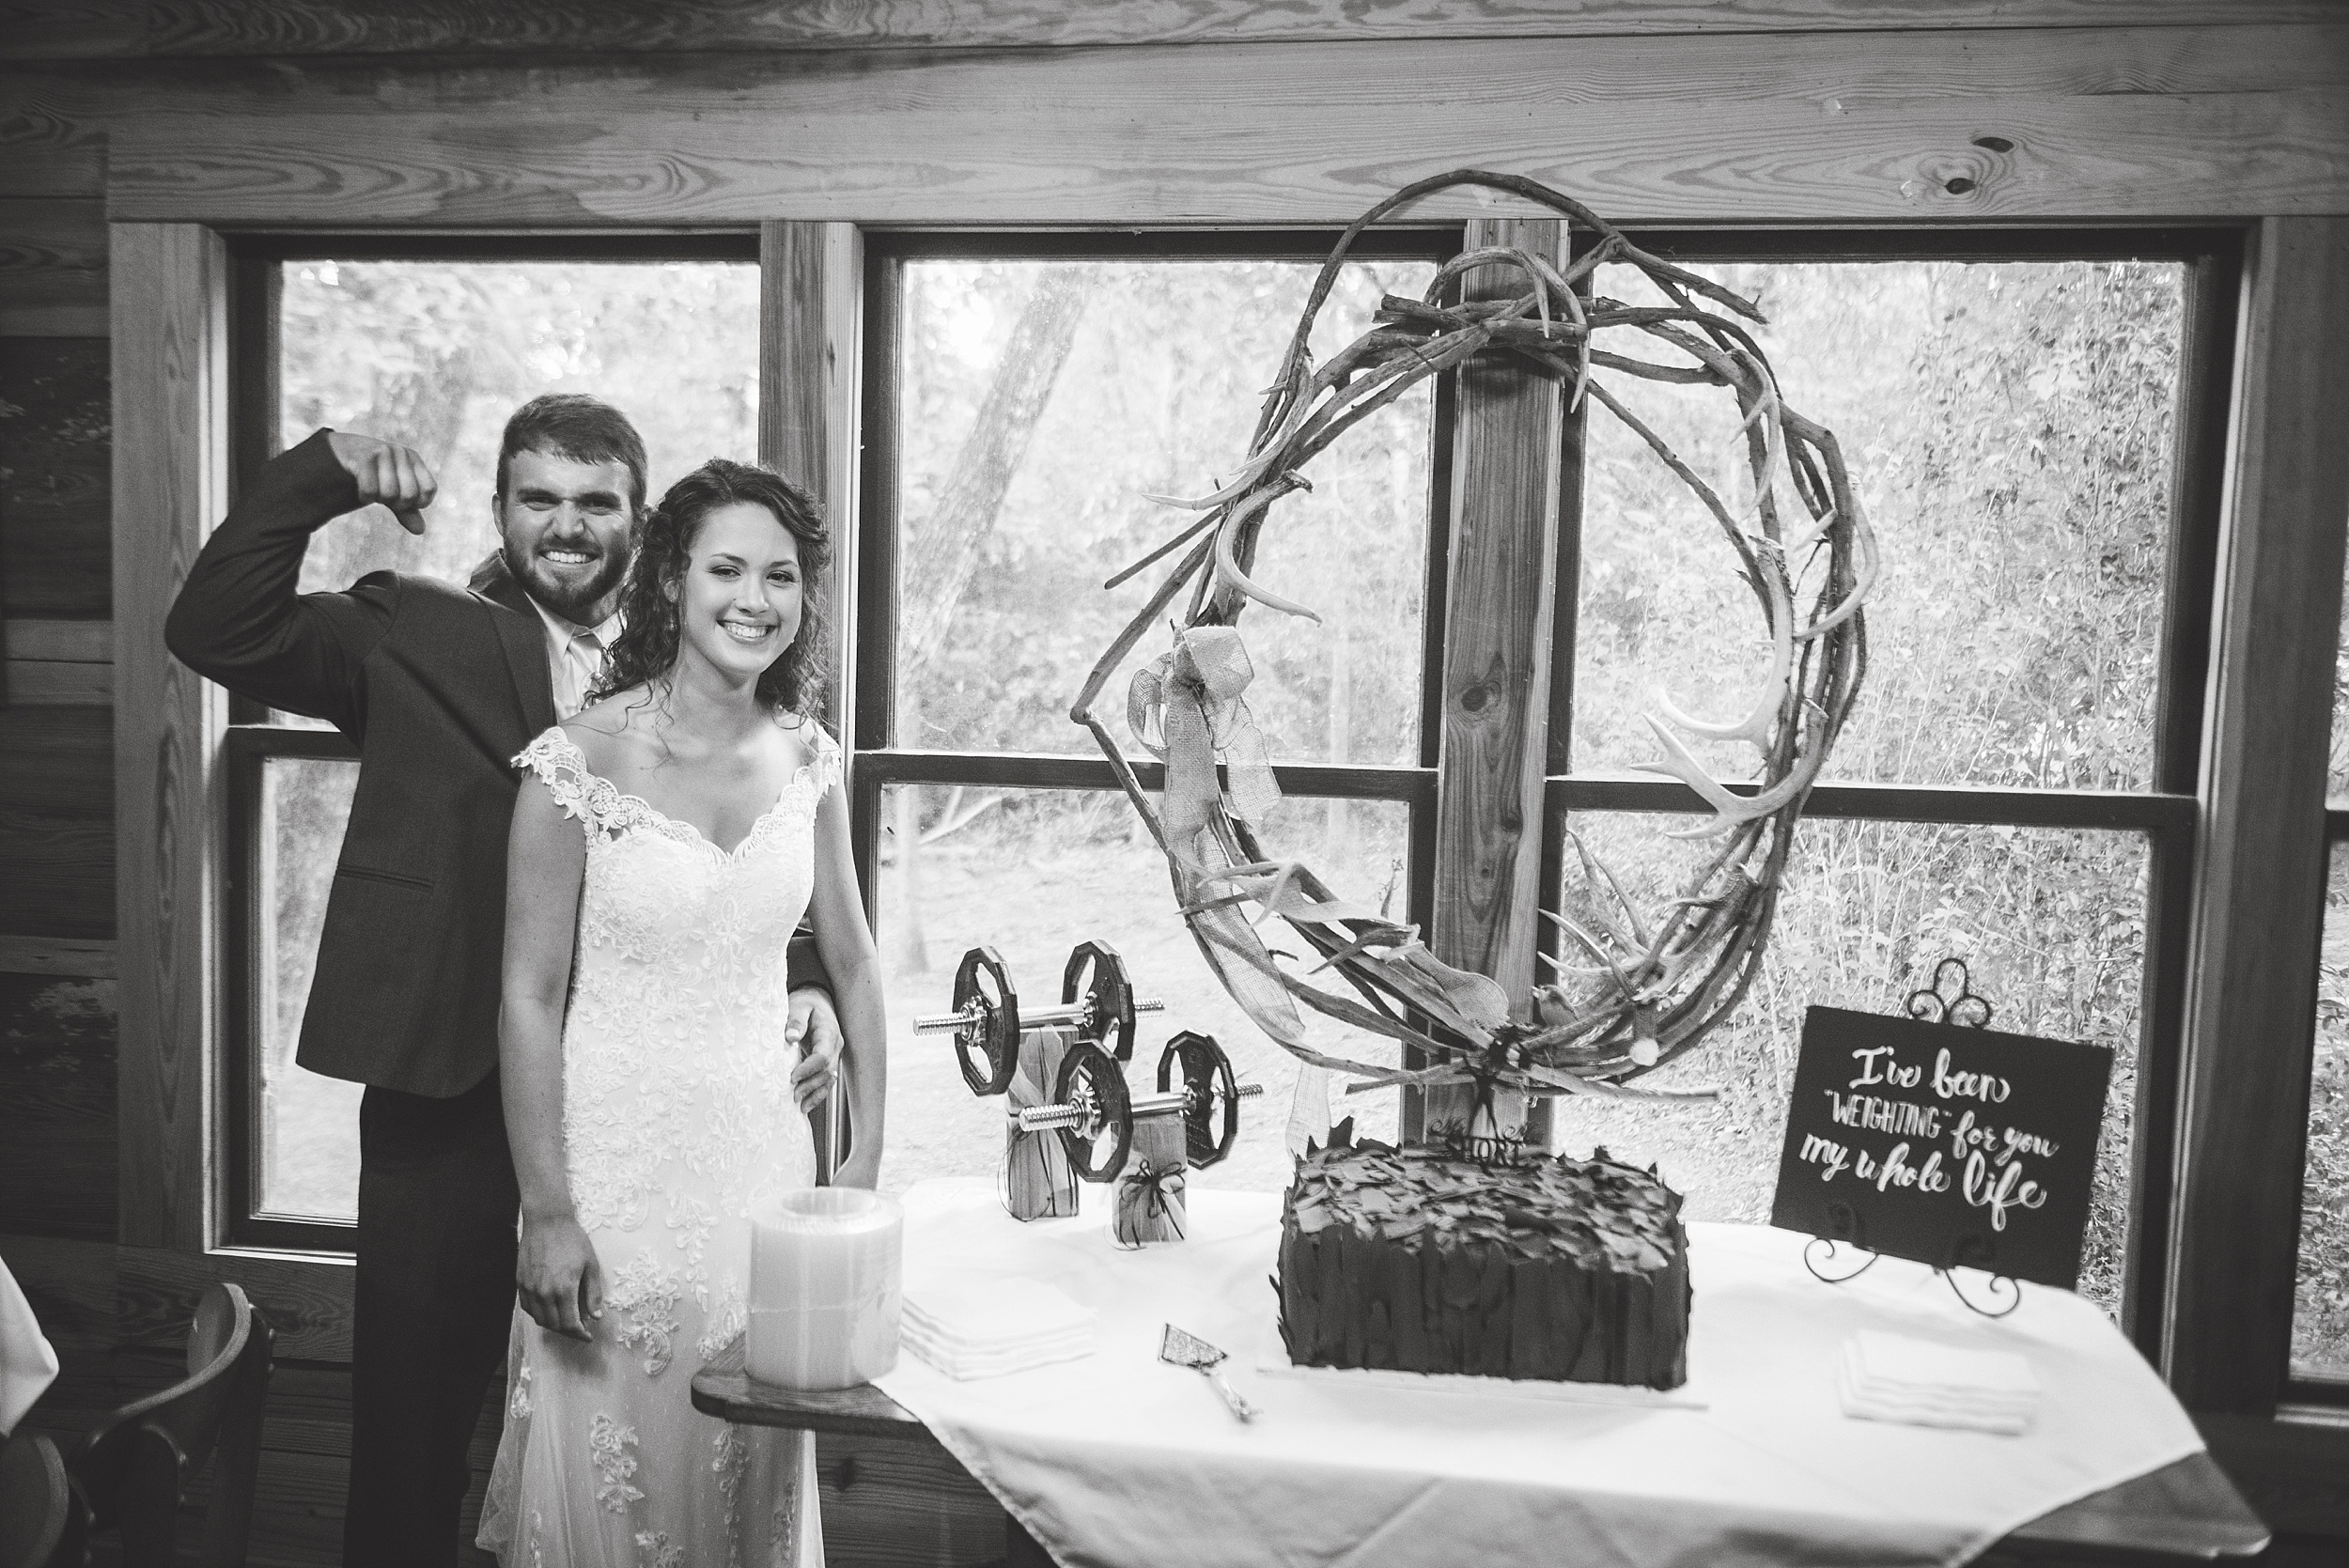 groom's cake featuring weightlifting equipment and groom flexing his bicepts